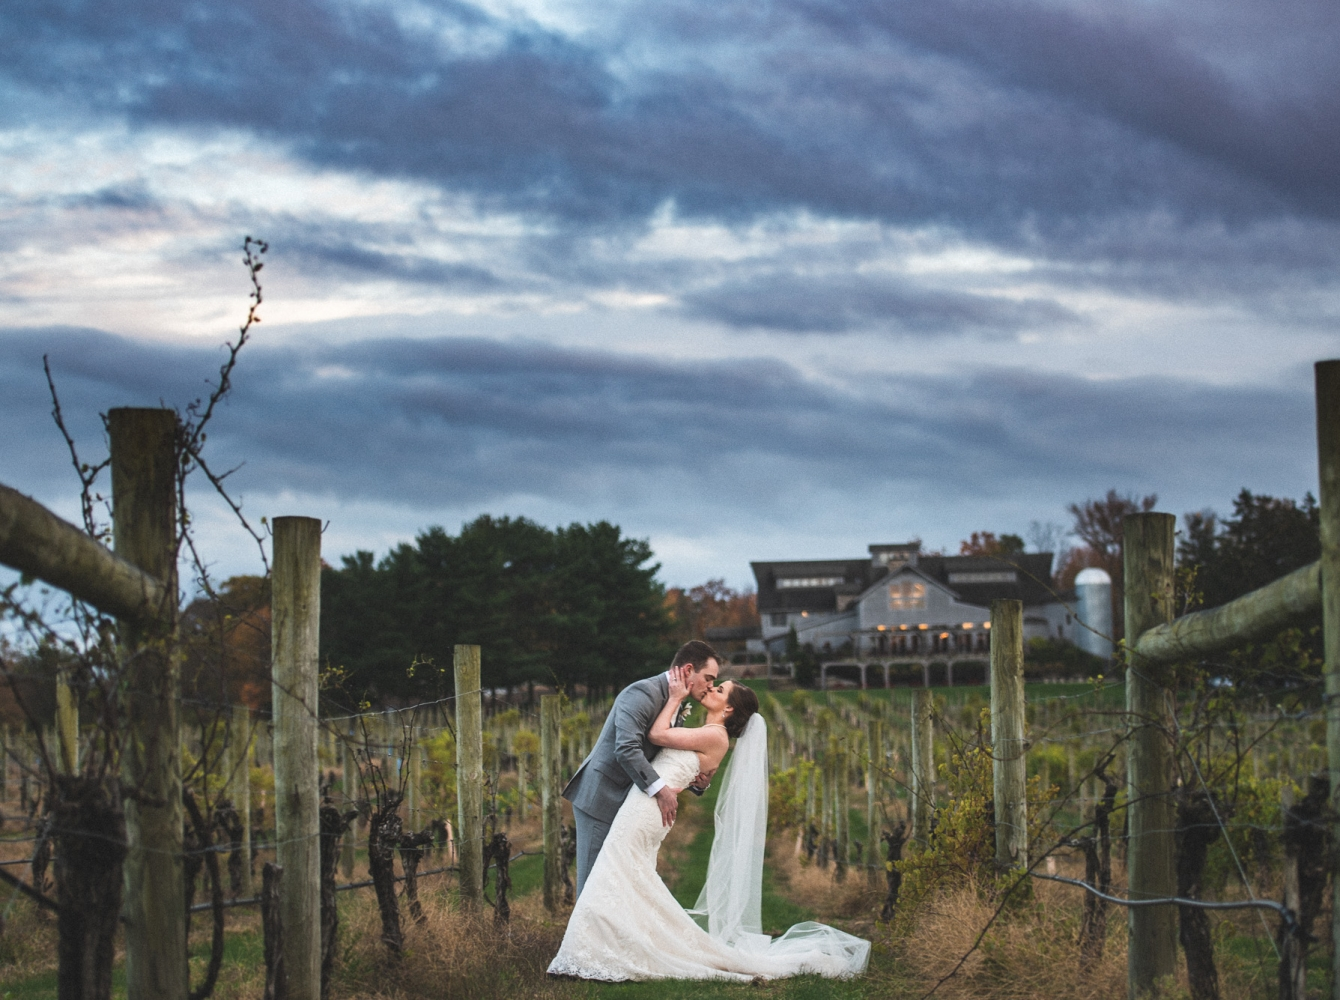 Christa & Kevin at Laurita Winery